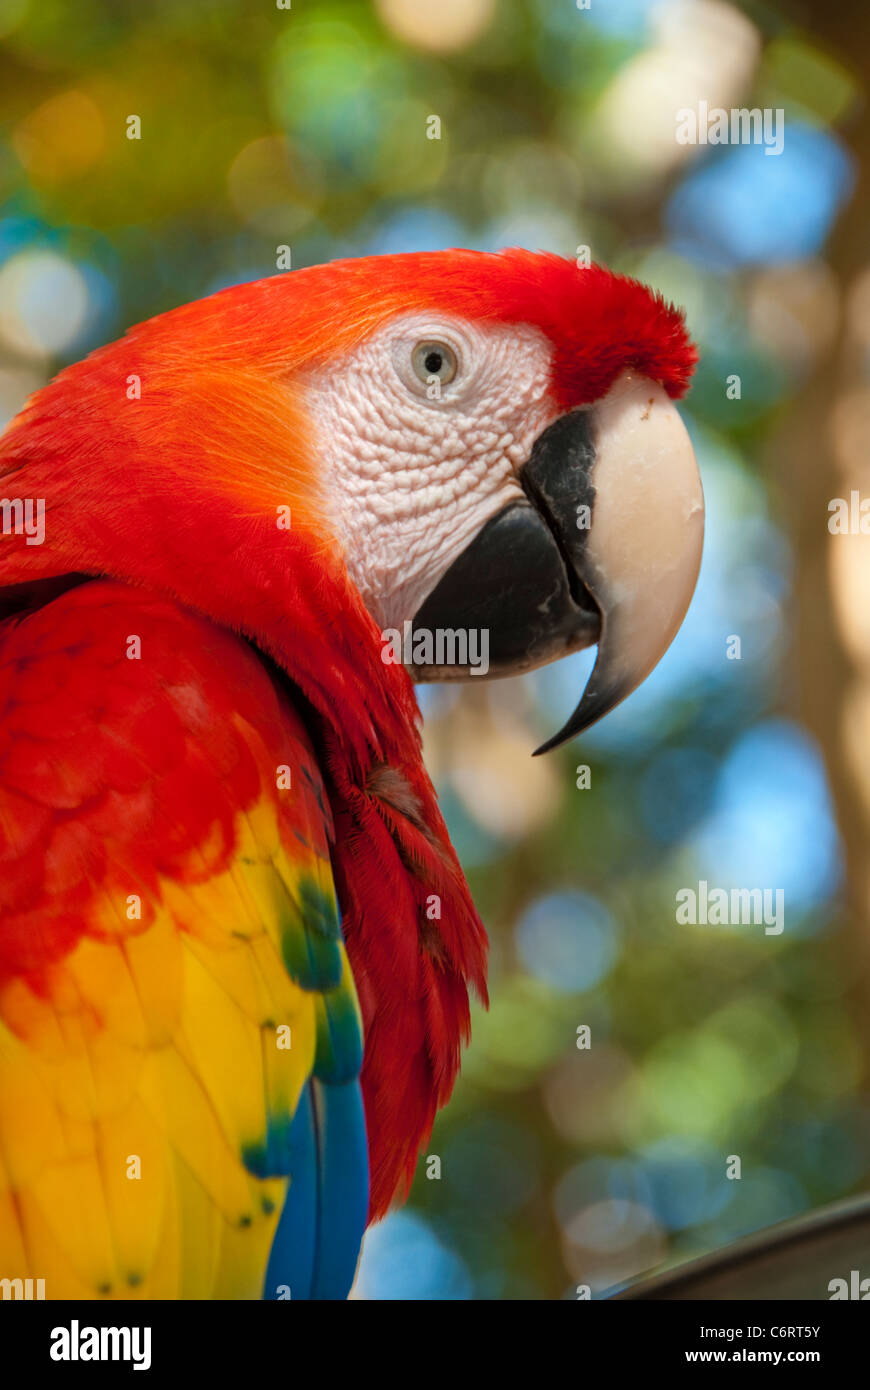 Colorful parrot in reds, blues, yellows and greens photographed in the jungles of Honduras - Stock Image